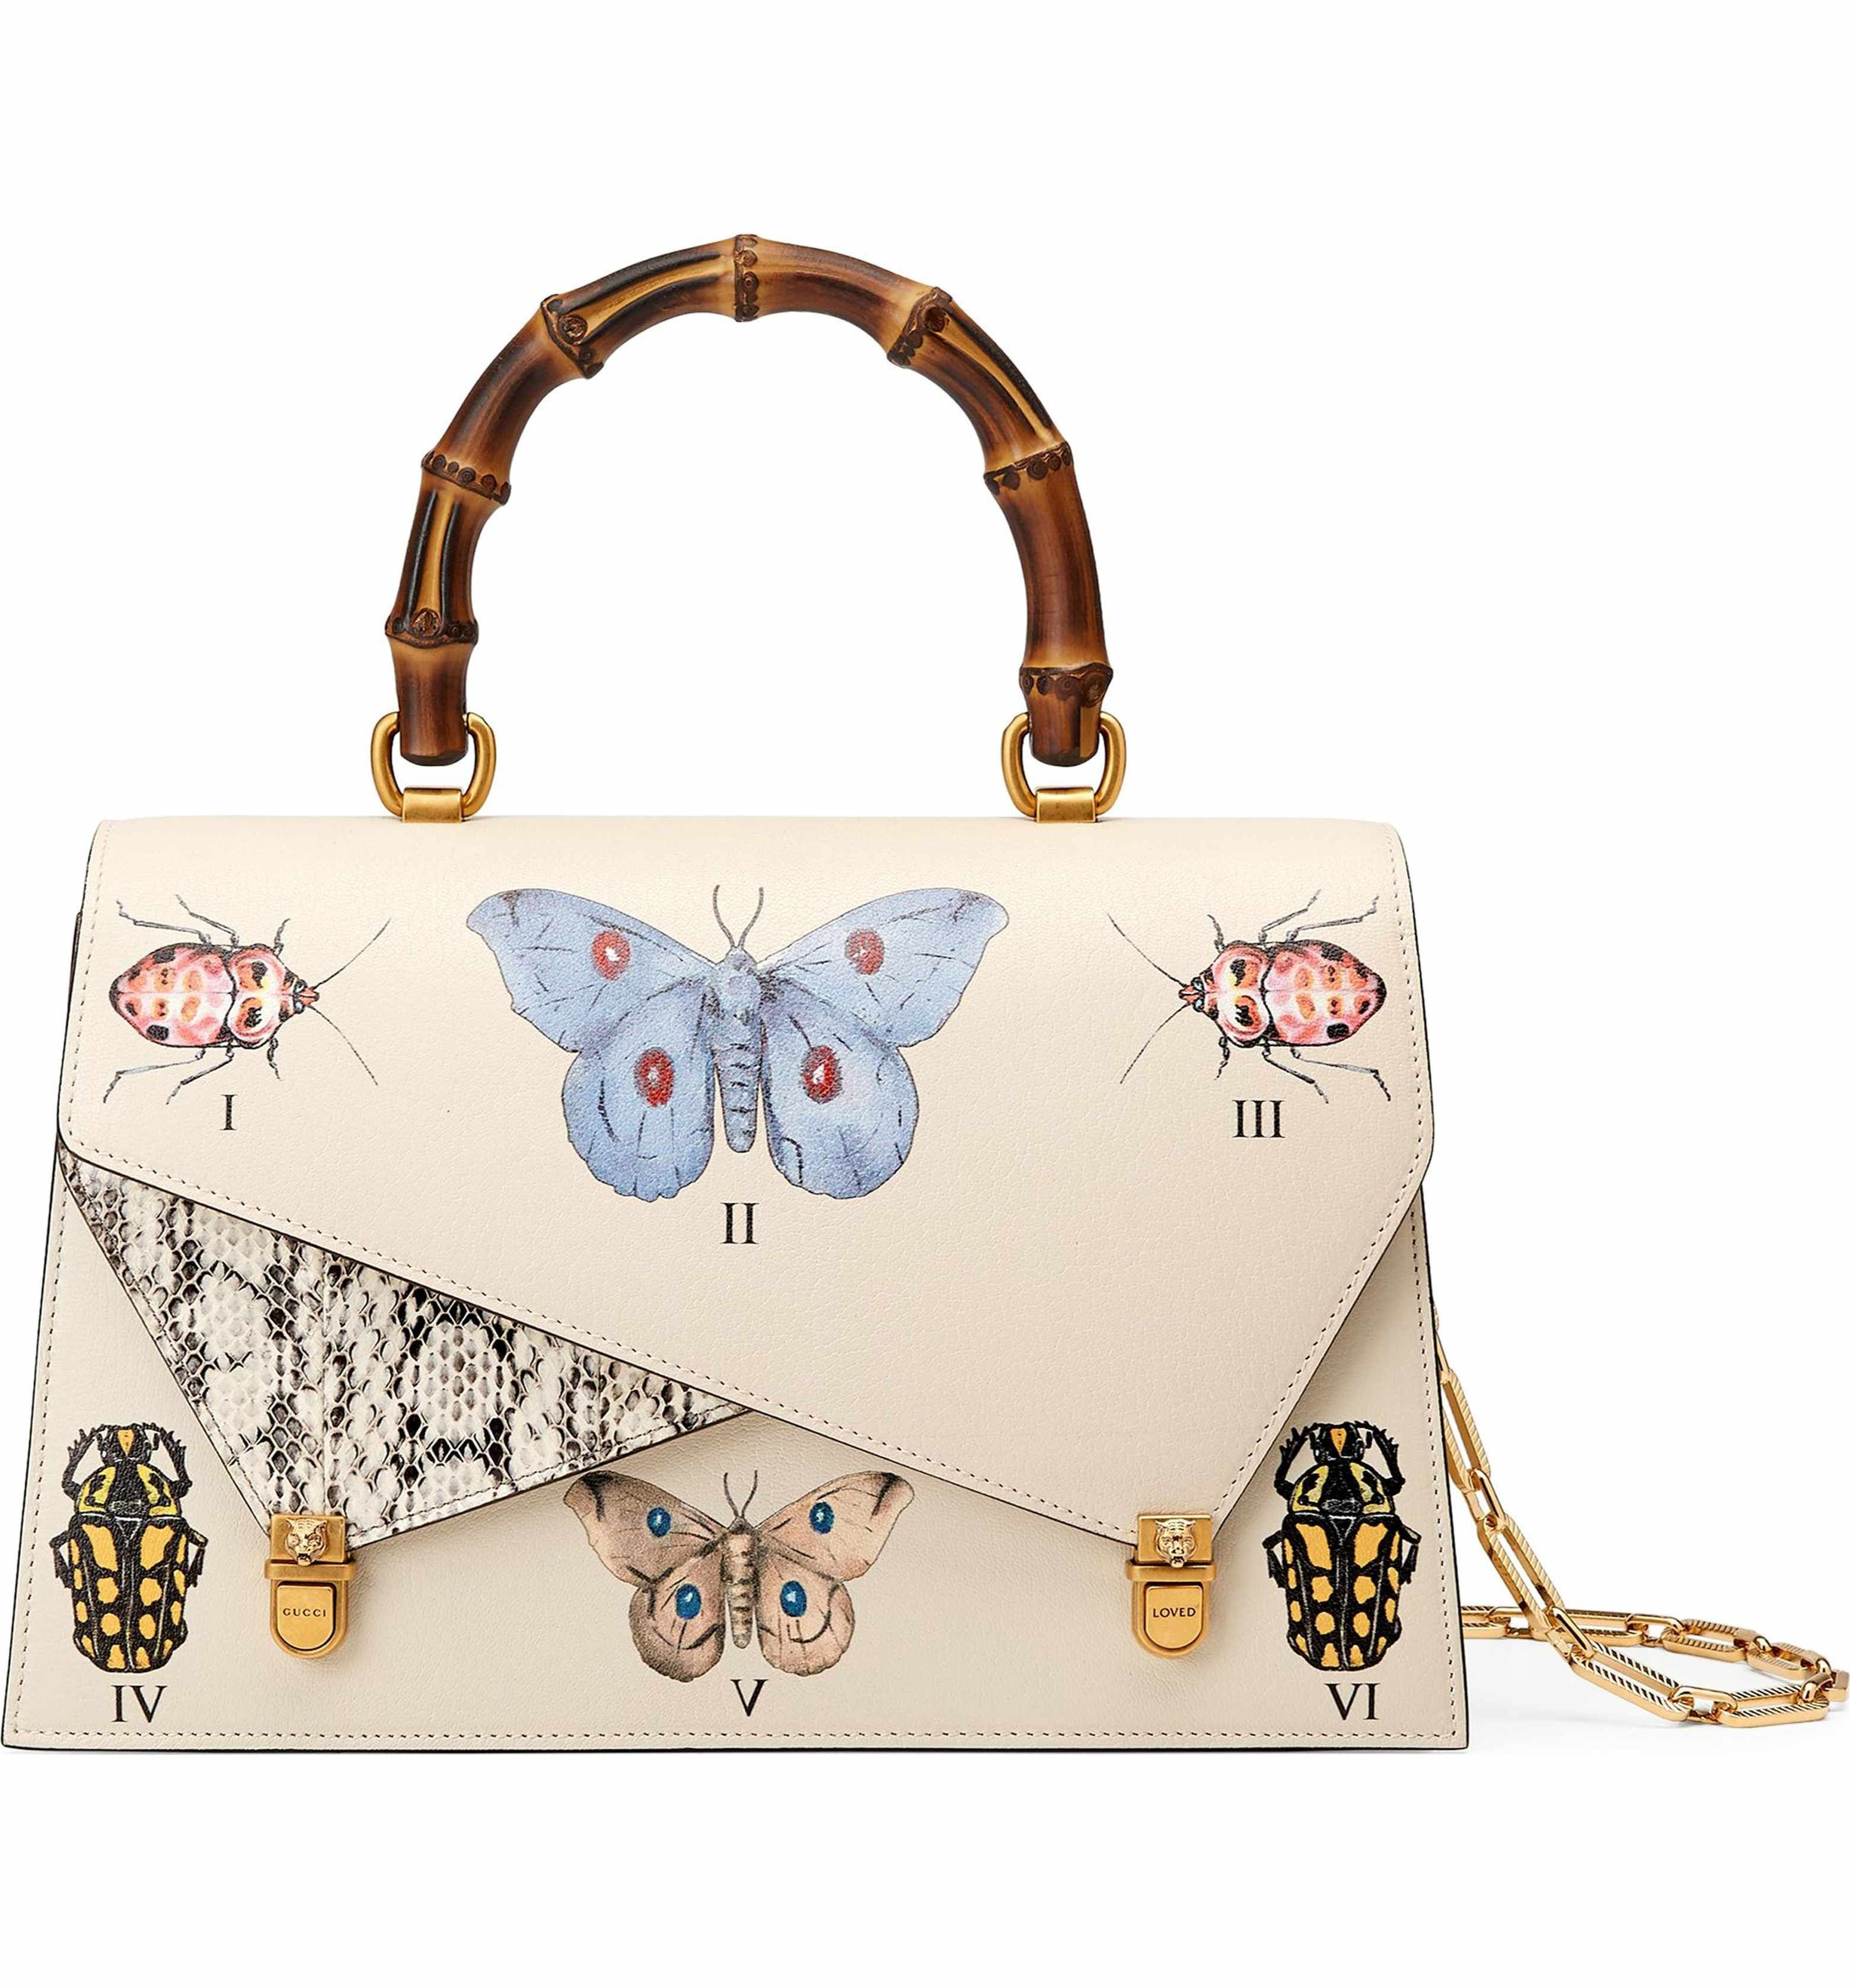 Main Image Gucci Medium Linea P Butterfly Painted Leather Genuine Snakeskin Top Handle Satchel Leather Purses Butterfly Handbag Leather Handbags